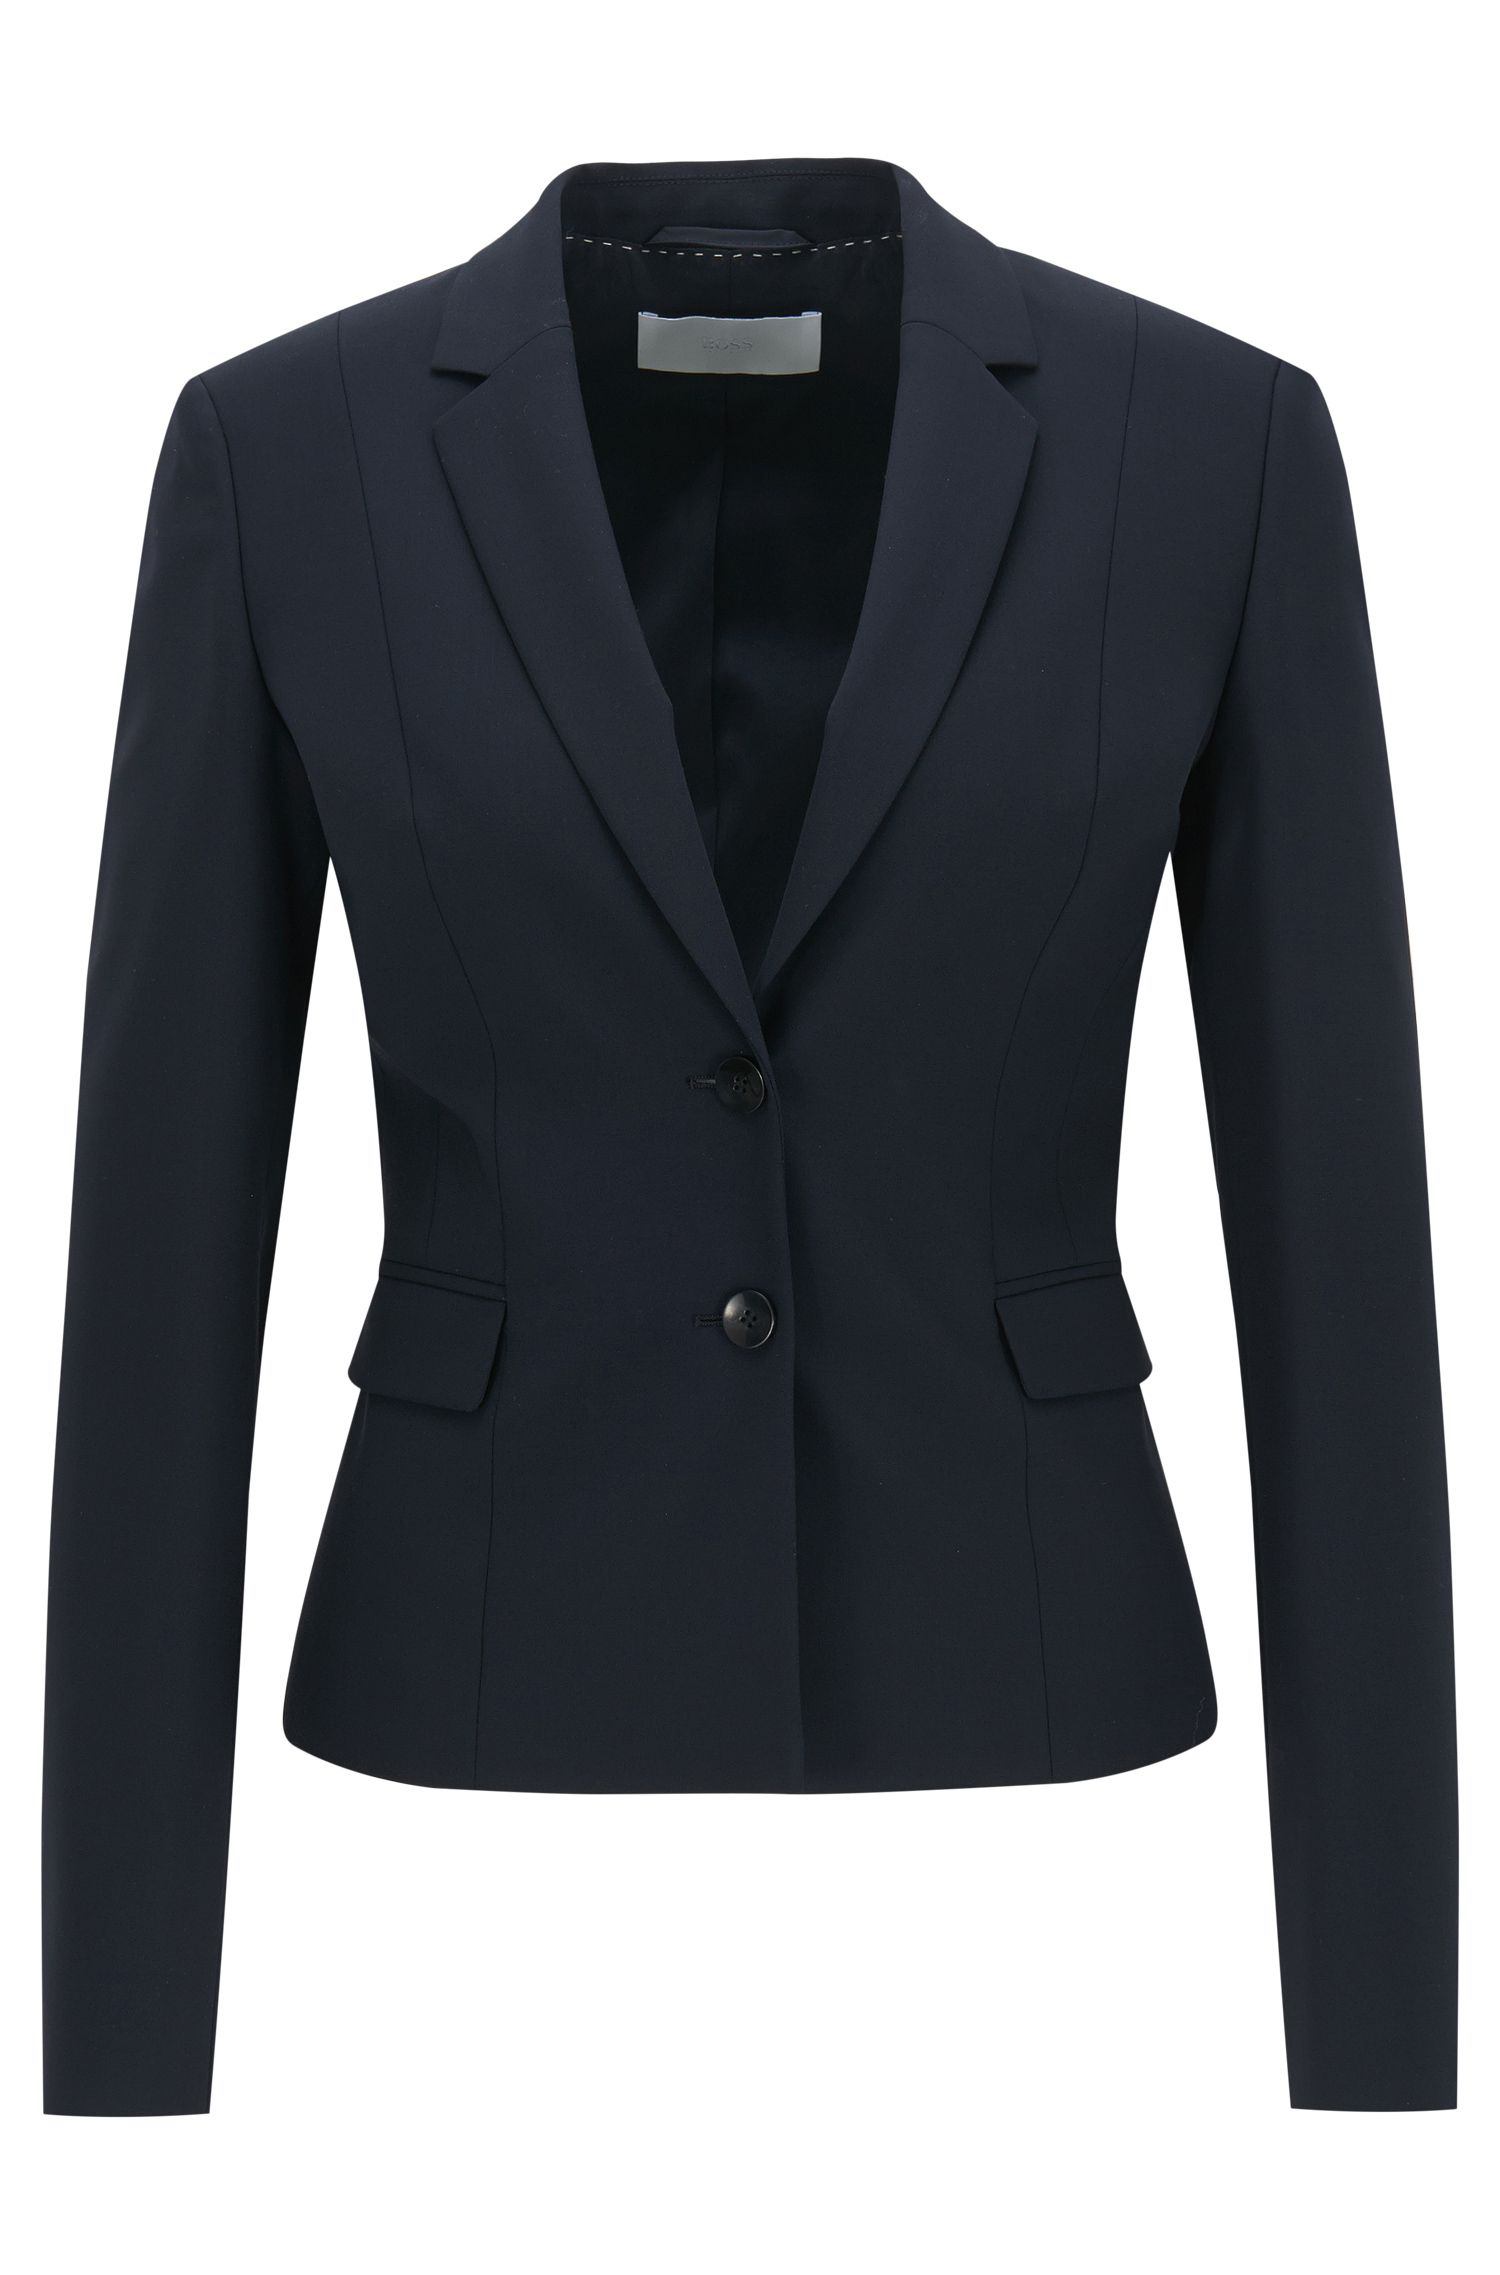 Stretch wool jacket with narrow lapels by BOSS Womenswear Fundamentals